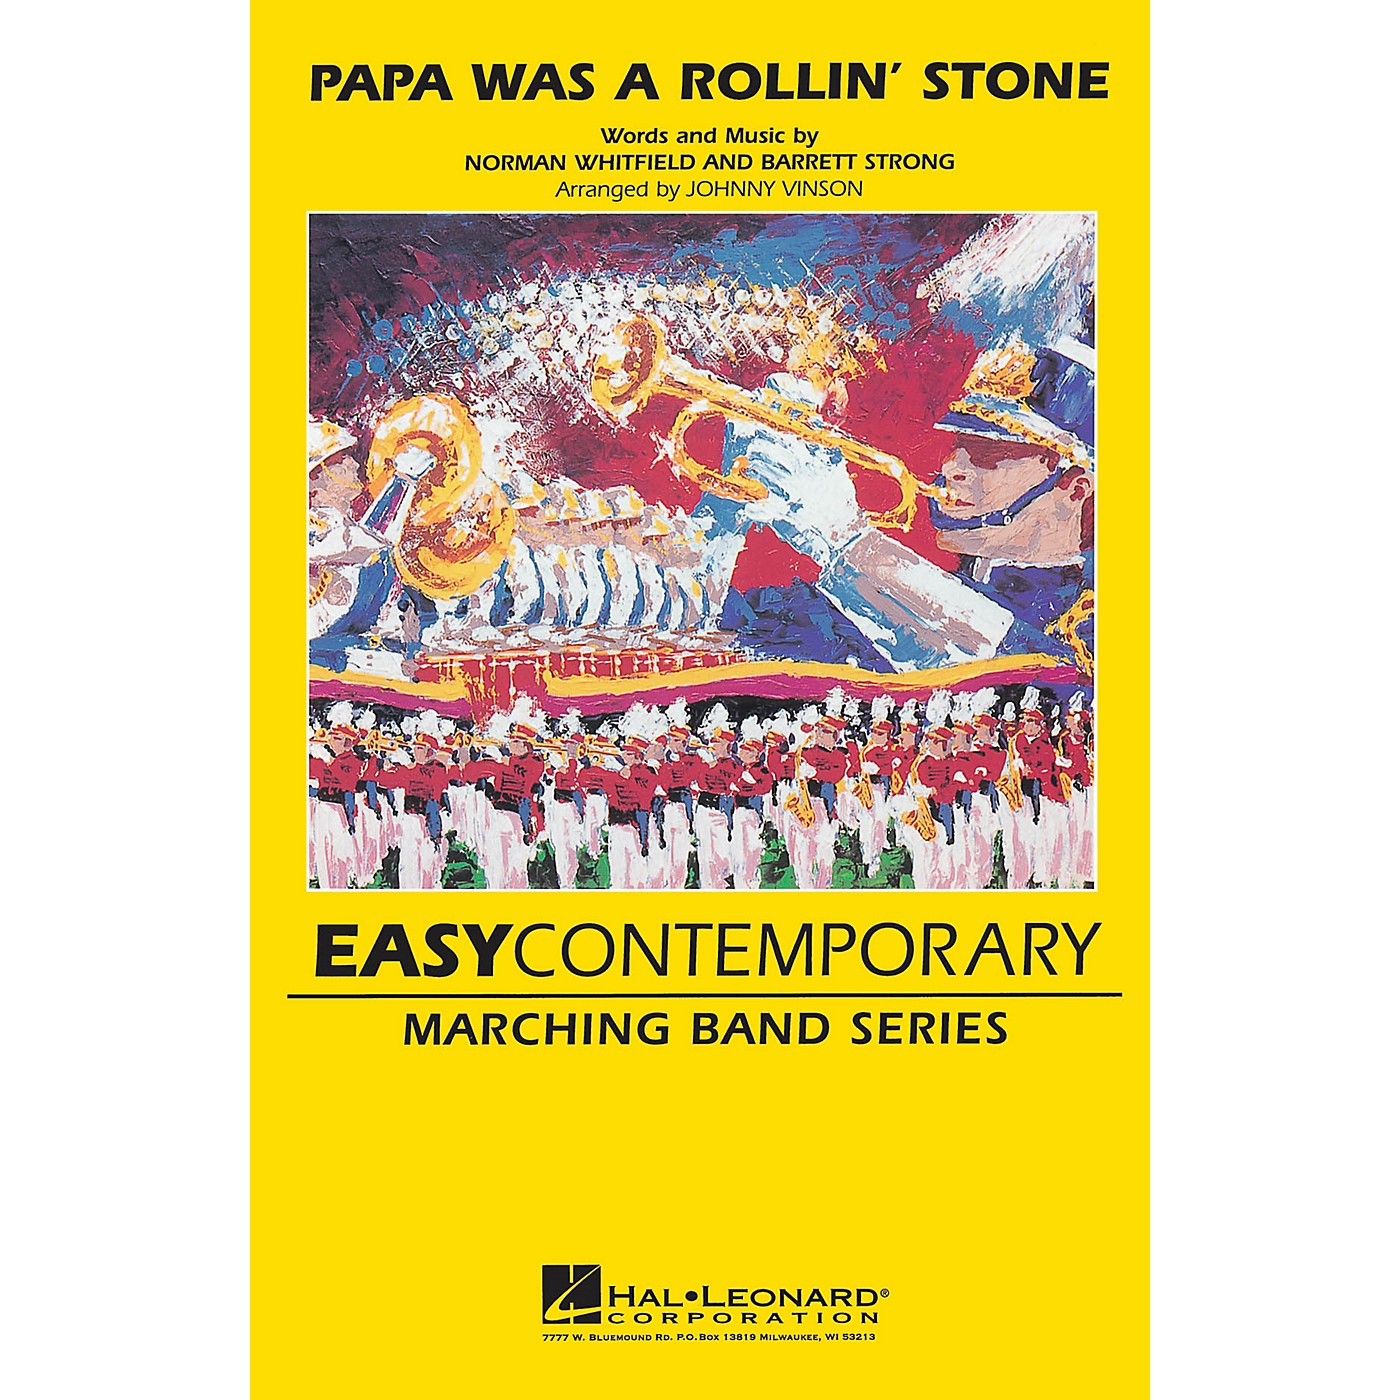 Hal Leonard Papa Was a Rolling Stone Marching Band Level 2-3 Arranged by Johnnie Vinson thumbnail